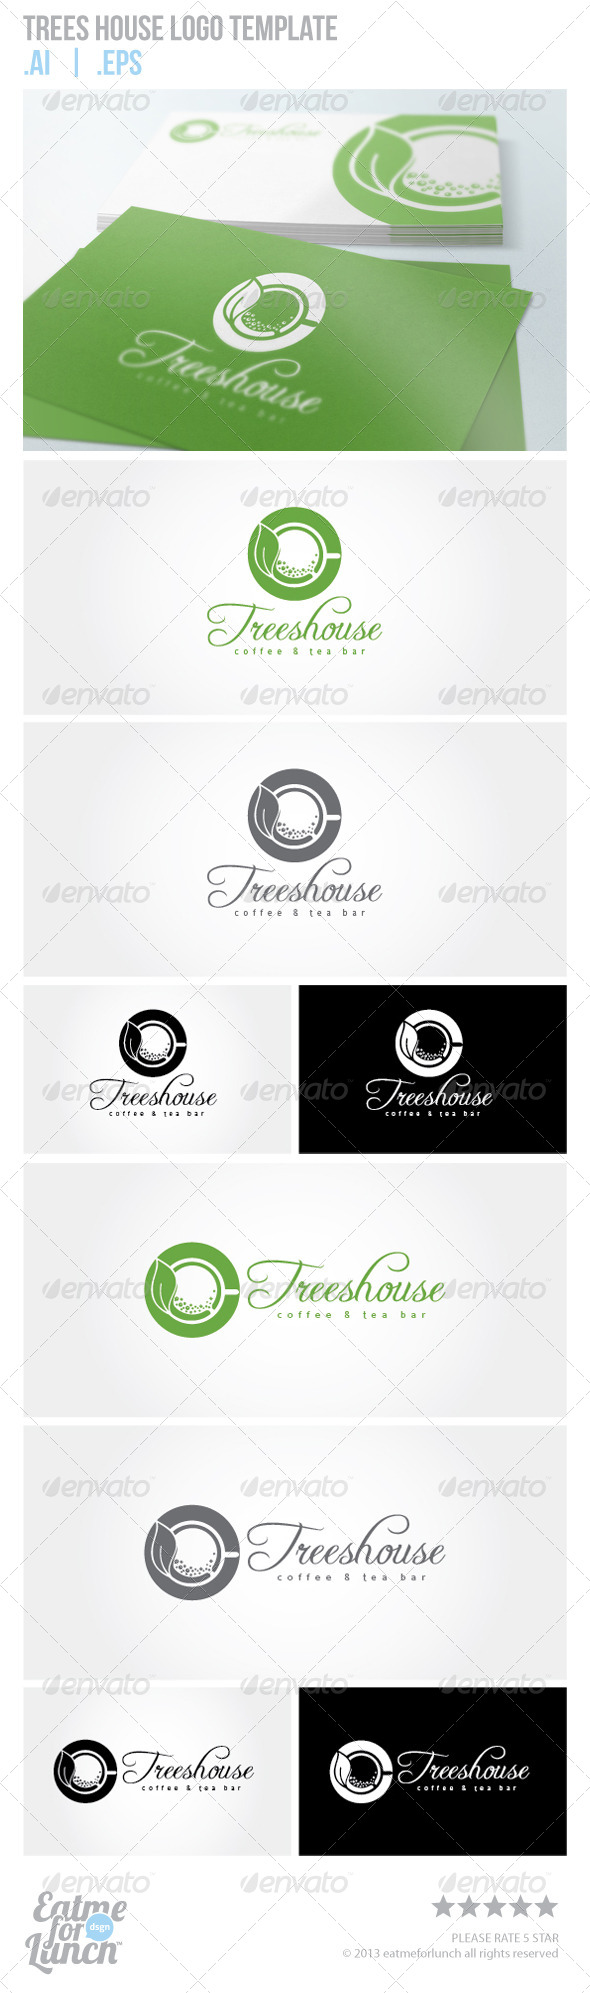 GraphicRiver Trees House Green Coffee and Tea Logo Template 5979657